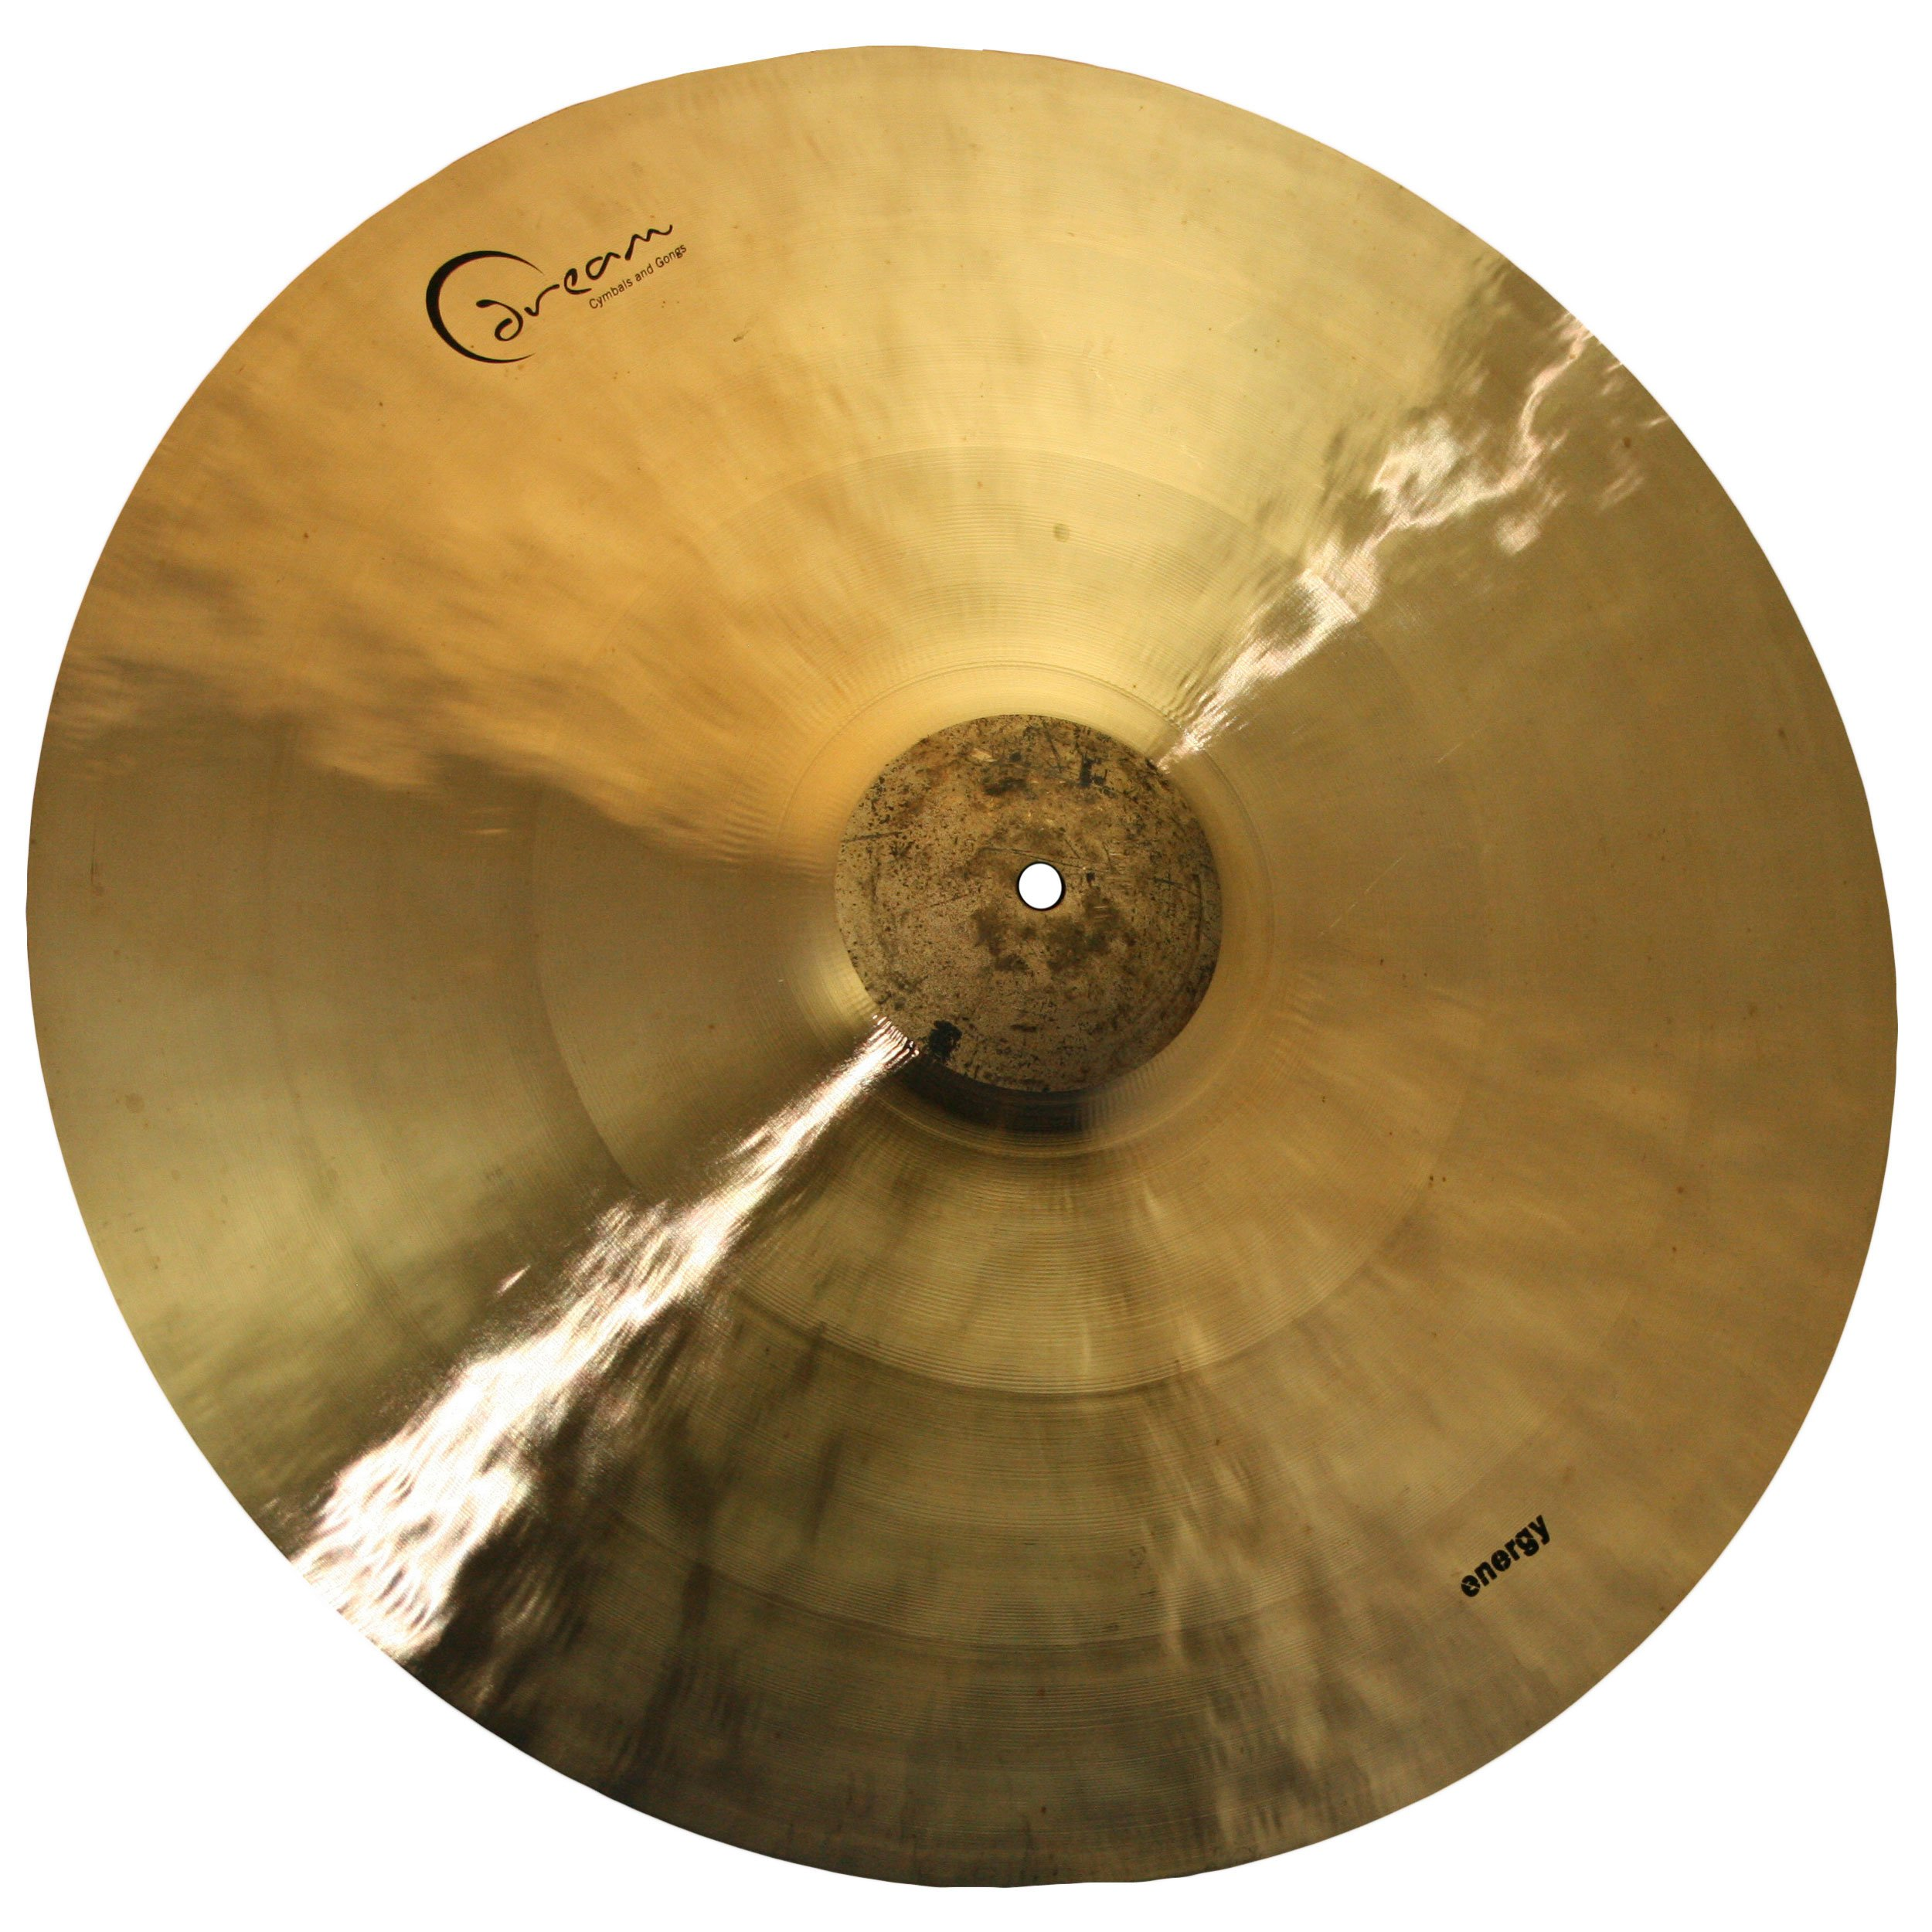 Dream Cymbals ERI22 Energy Series Ride 22'' Cymbal by DREAM CYMBALS